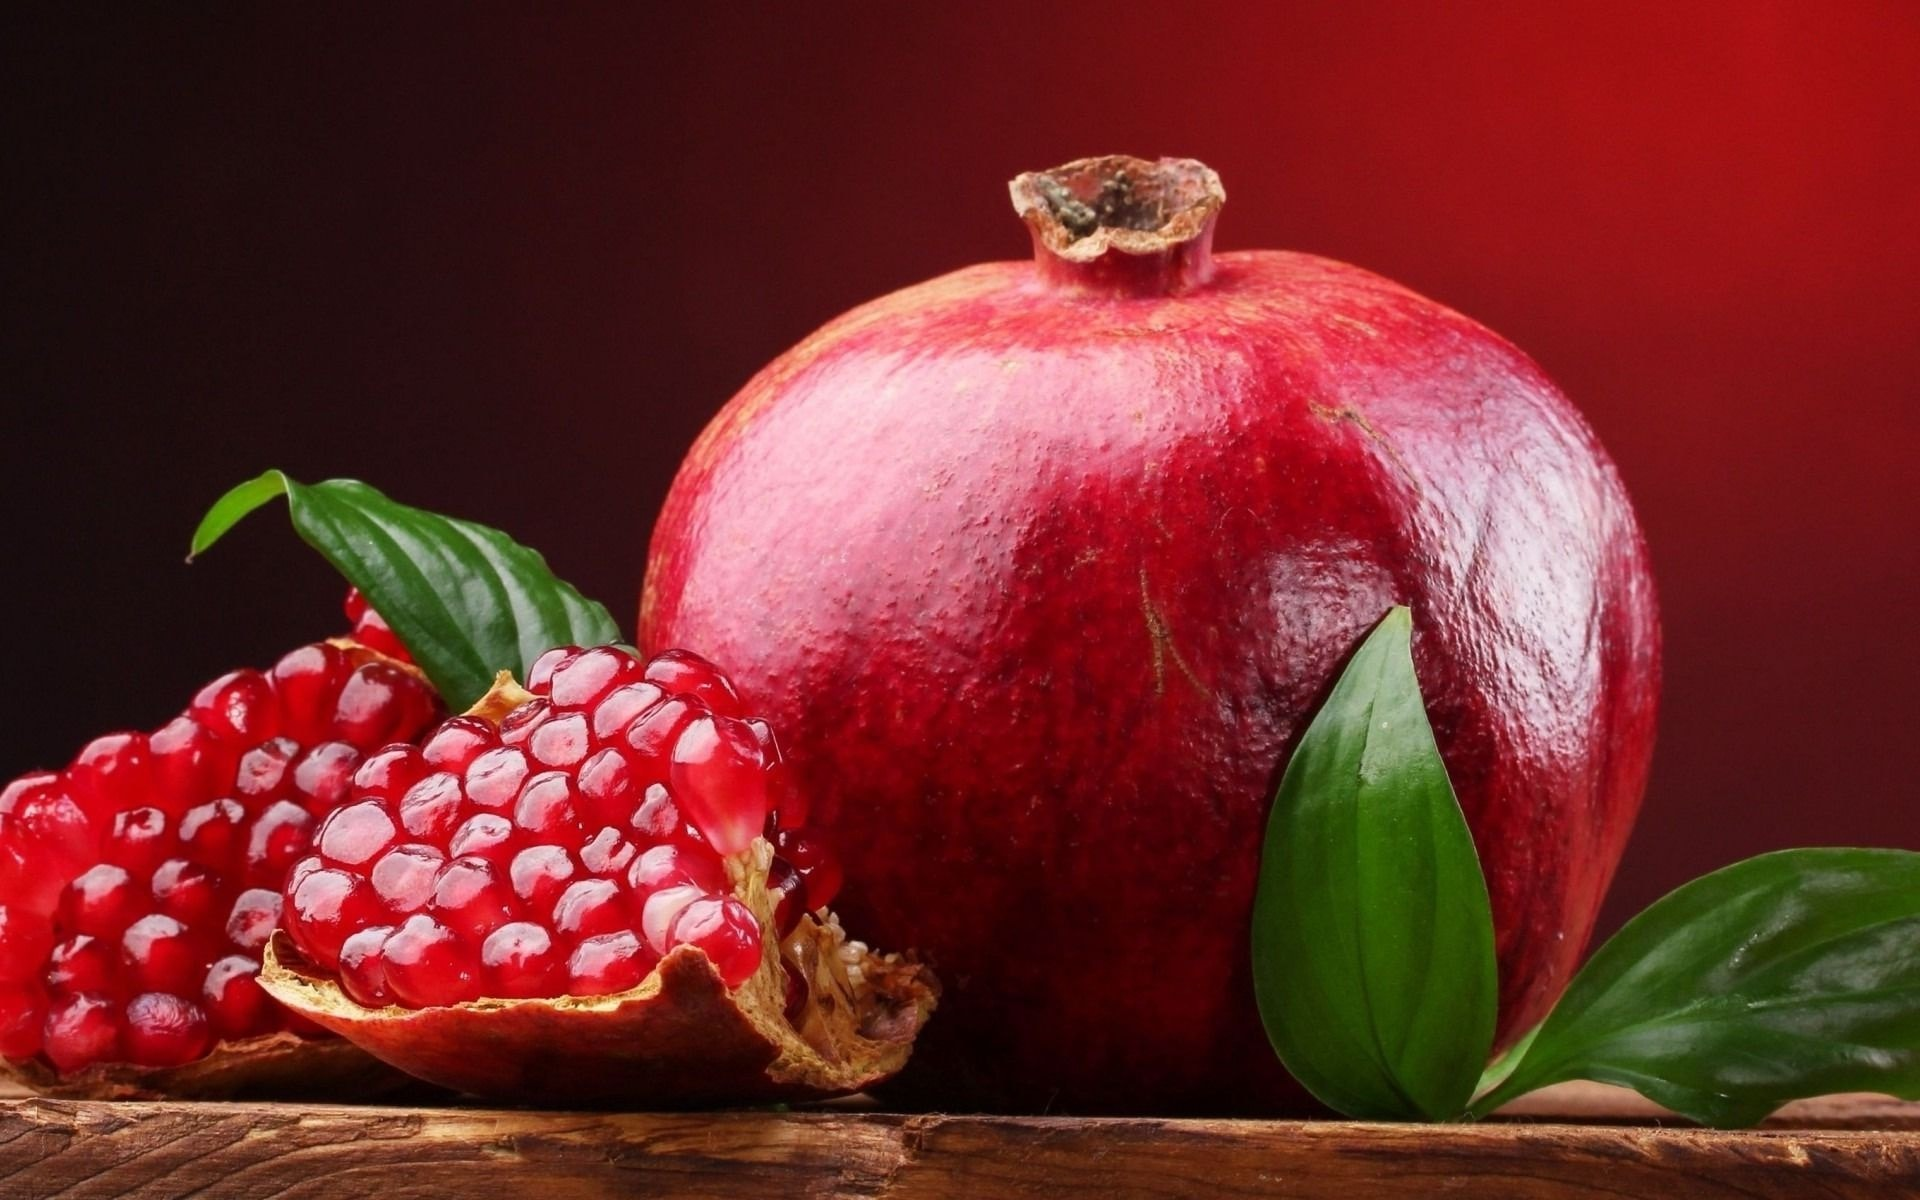 Pomegranate widescreen for desktop